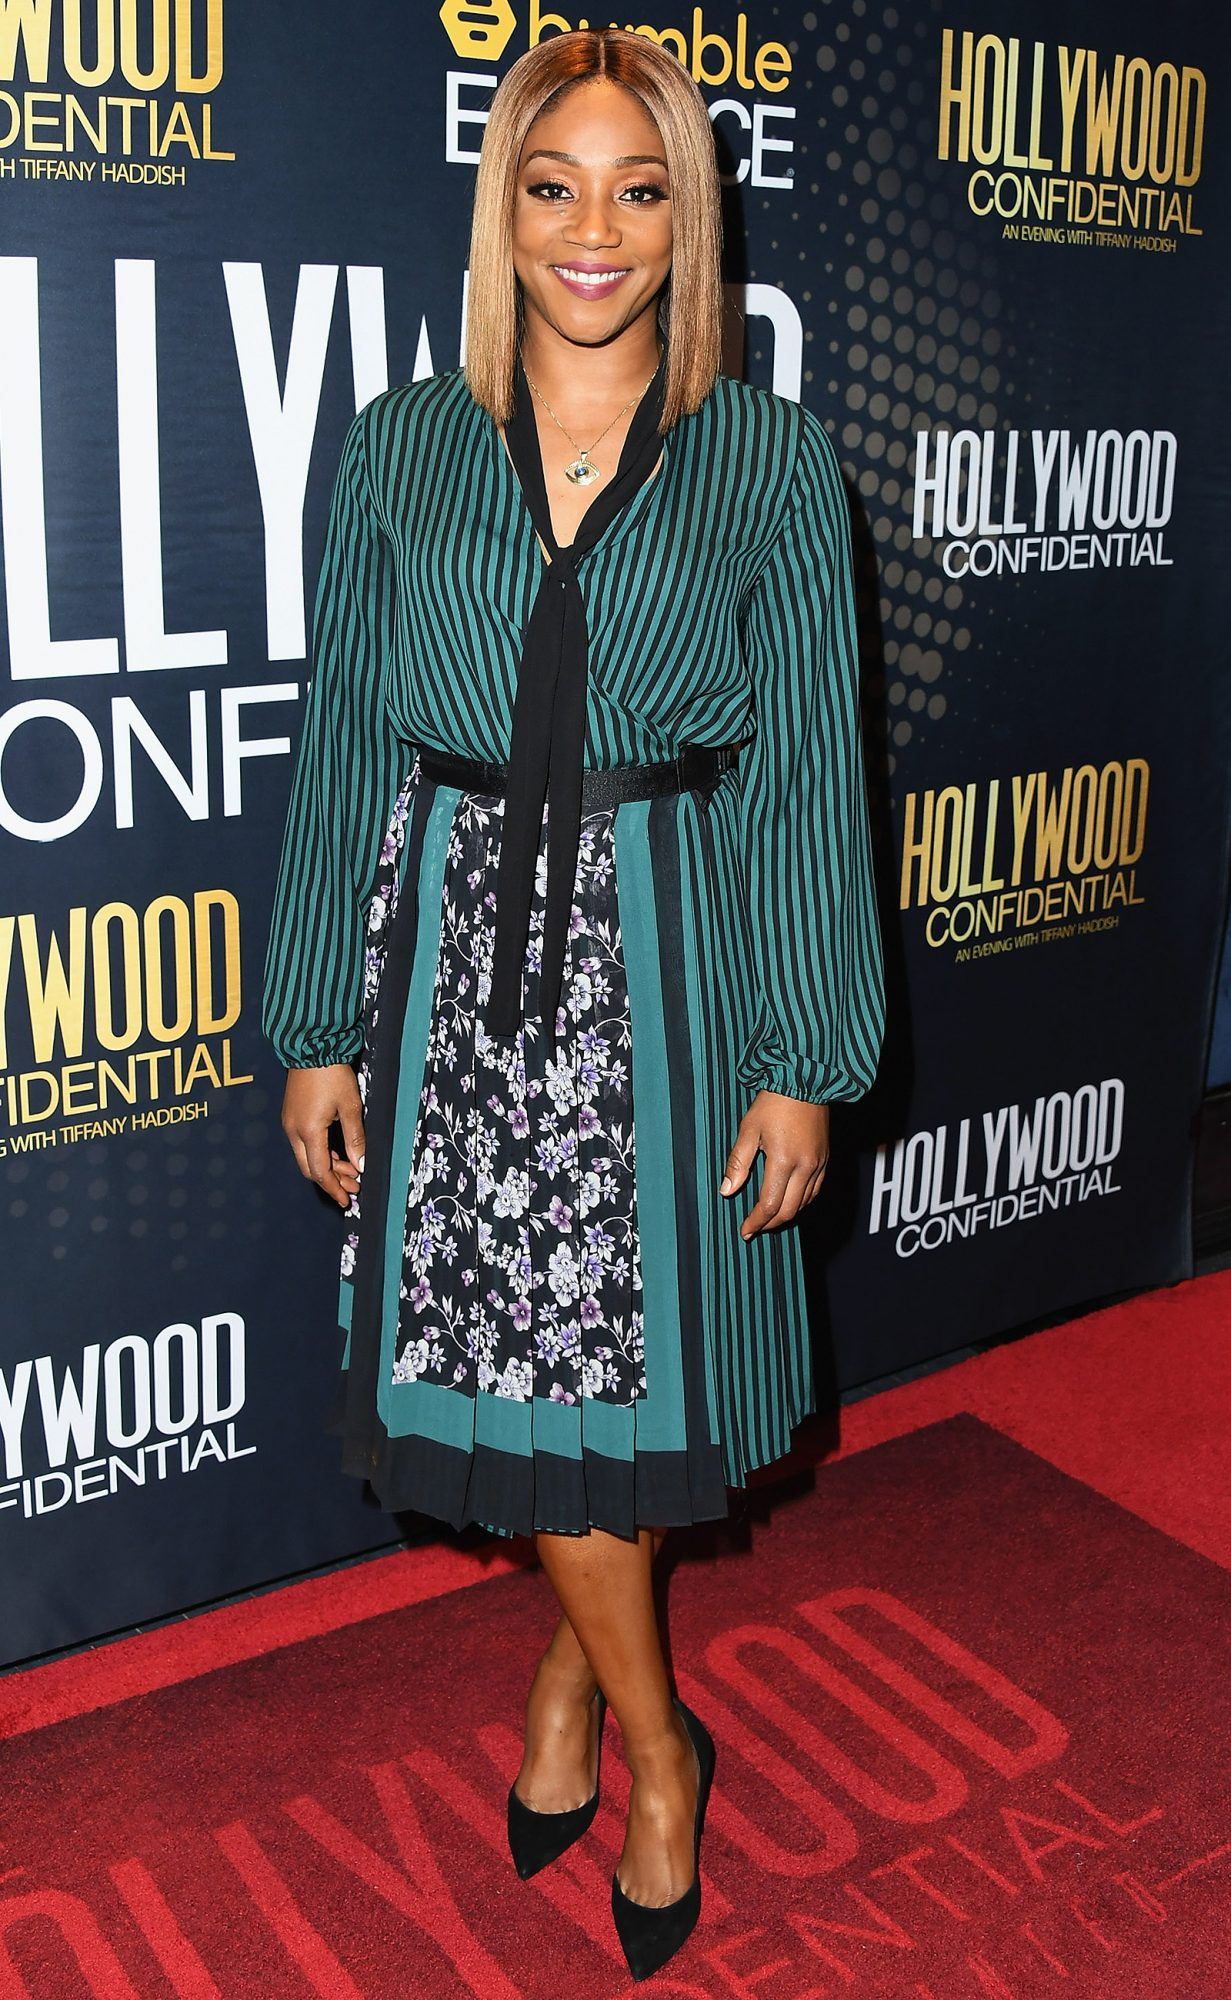 Essence Magazine And Hollywood Confidential Present An Evening With Tiffany Haddish - Arrivals